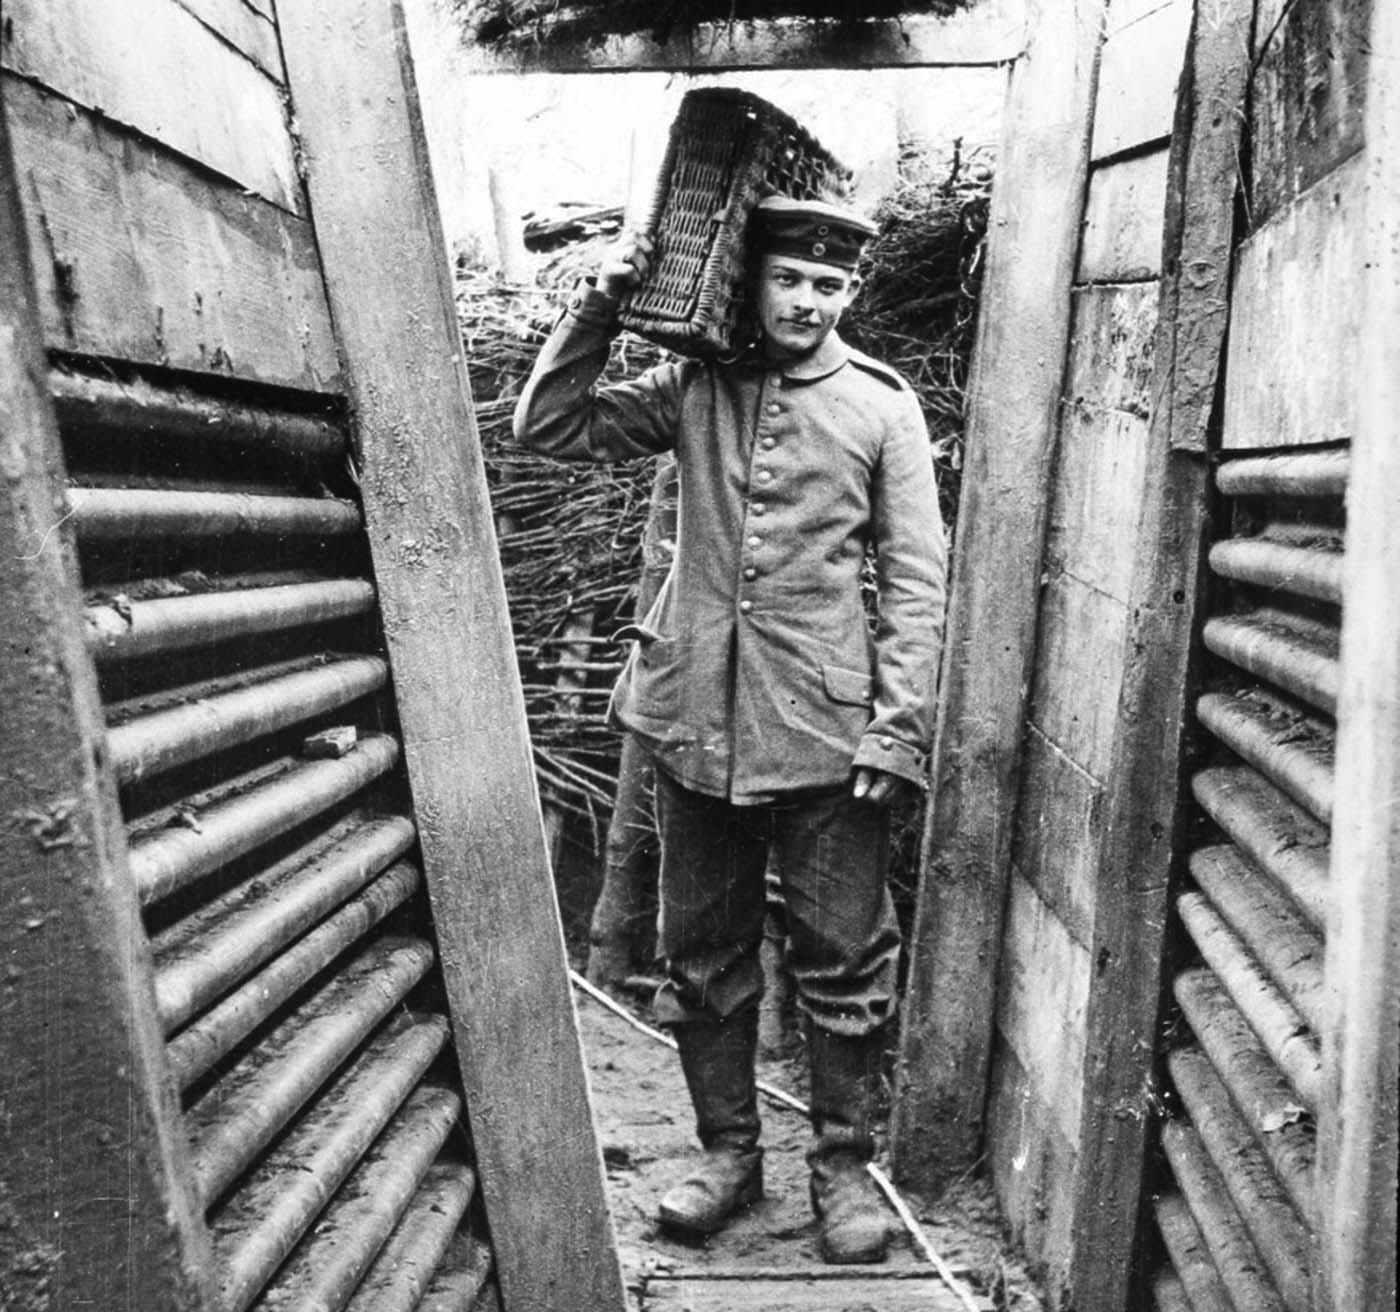 Walter Kleinfeldt, pictured carrying ammunition in a Somme trench, joined a German gun crew in 1915 and fought at the Somme aged just 16, taking pictures of life on the frontline with his Contessa camera.